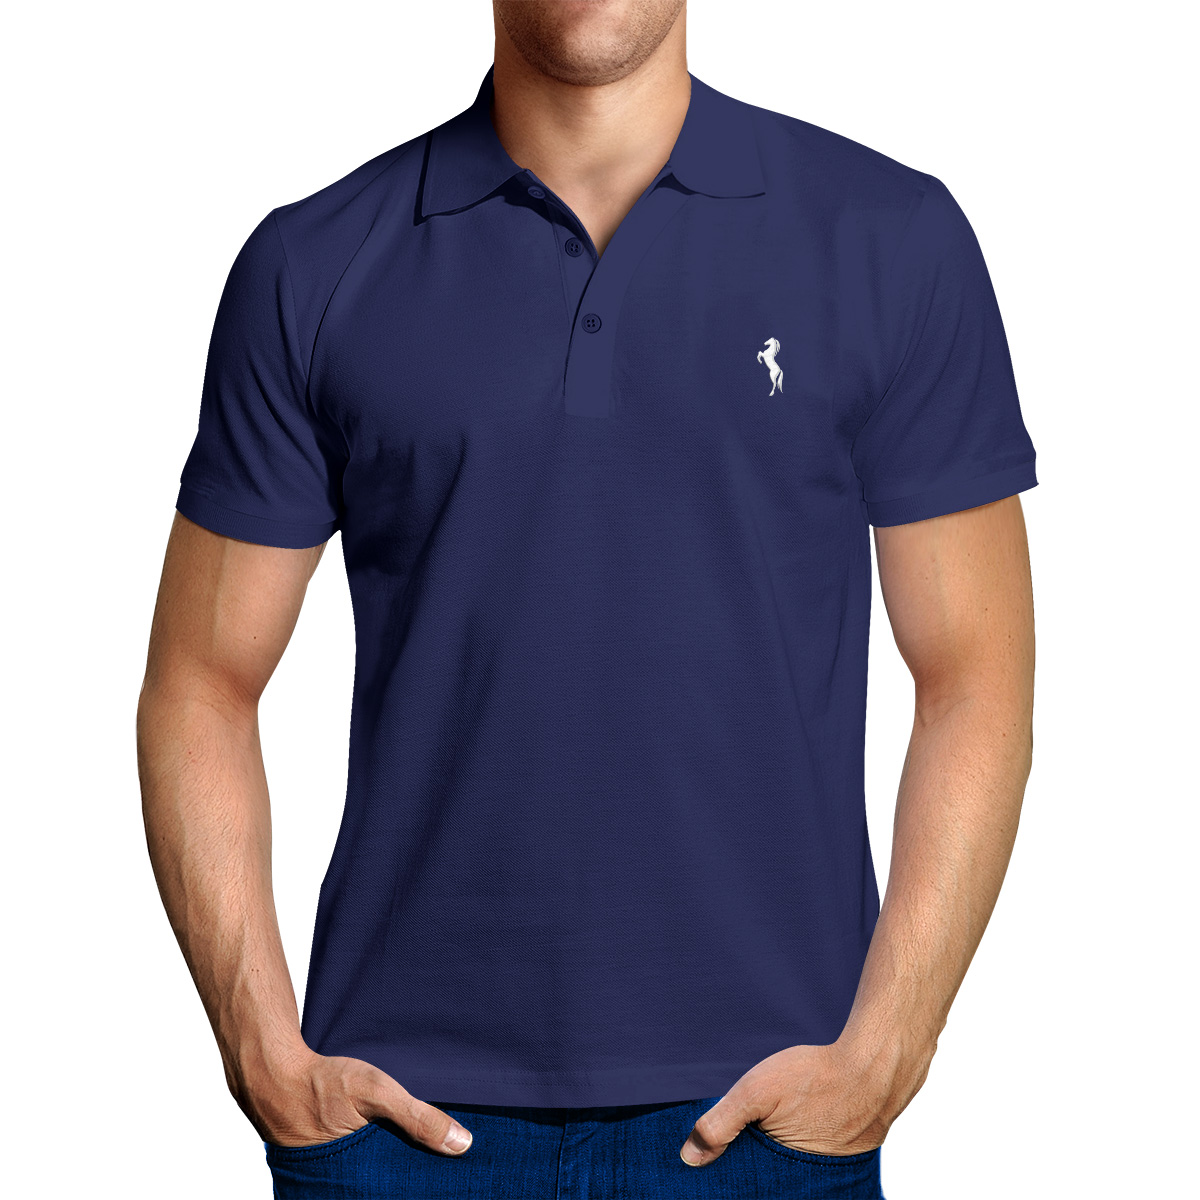 Shop Notre Dame Men's Polos at the Official University of Notre Dame Shop. Buy Notre Dame Polo Shirts for Men featuring Notre Dame Coaches Polo, Sideline, Pique, Performance Polos, Hawaiian and Dress Shirts. Have your Notre Dame Fighting Irish Mens Polo Shirt.